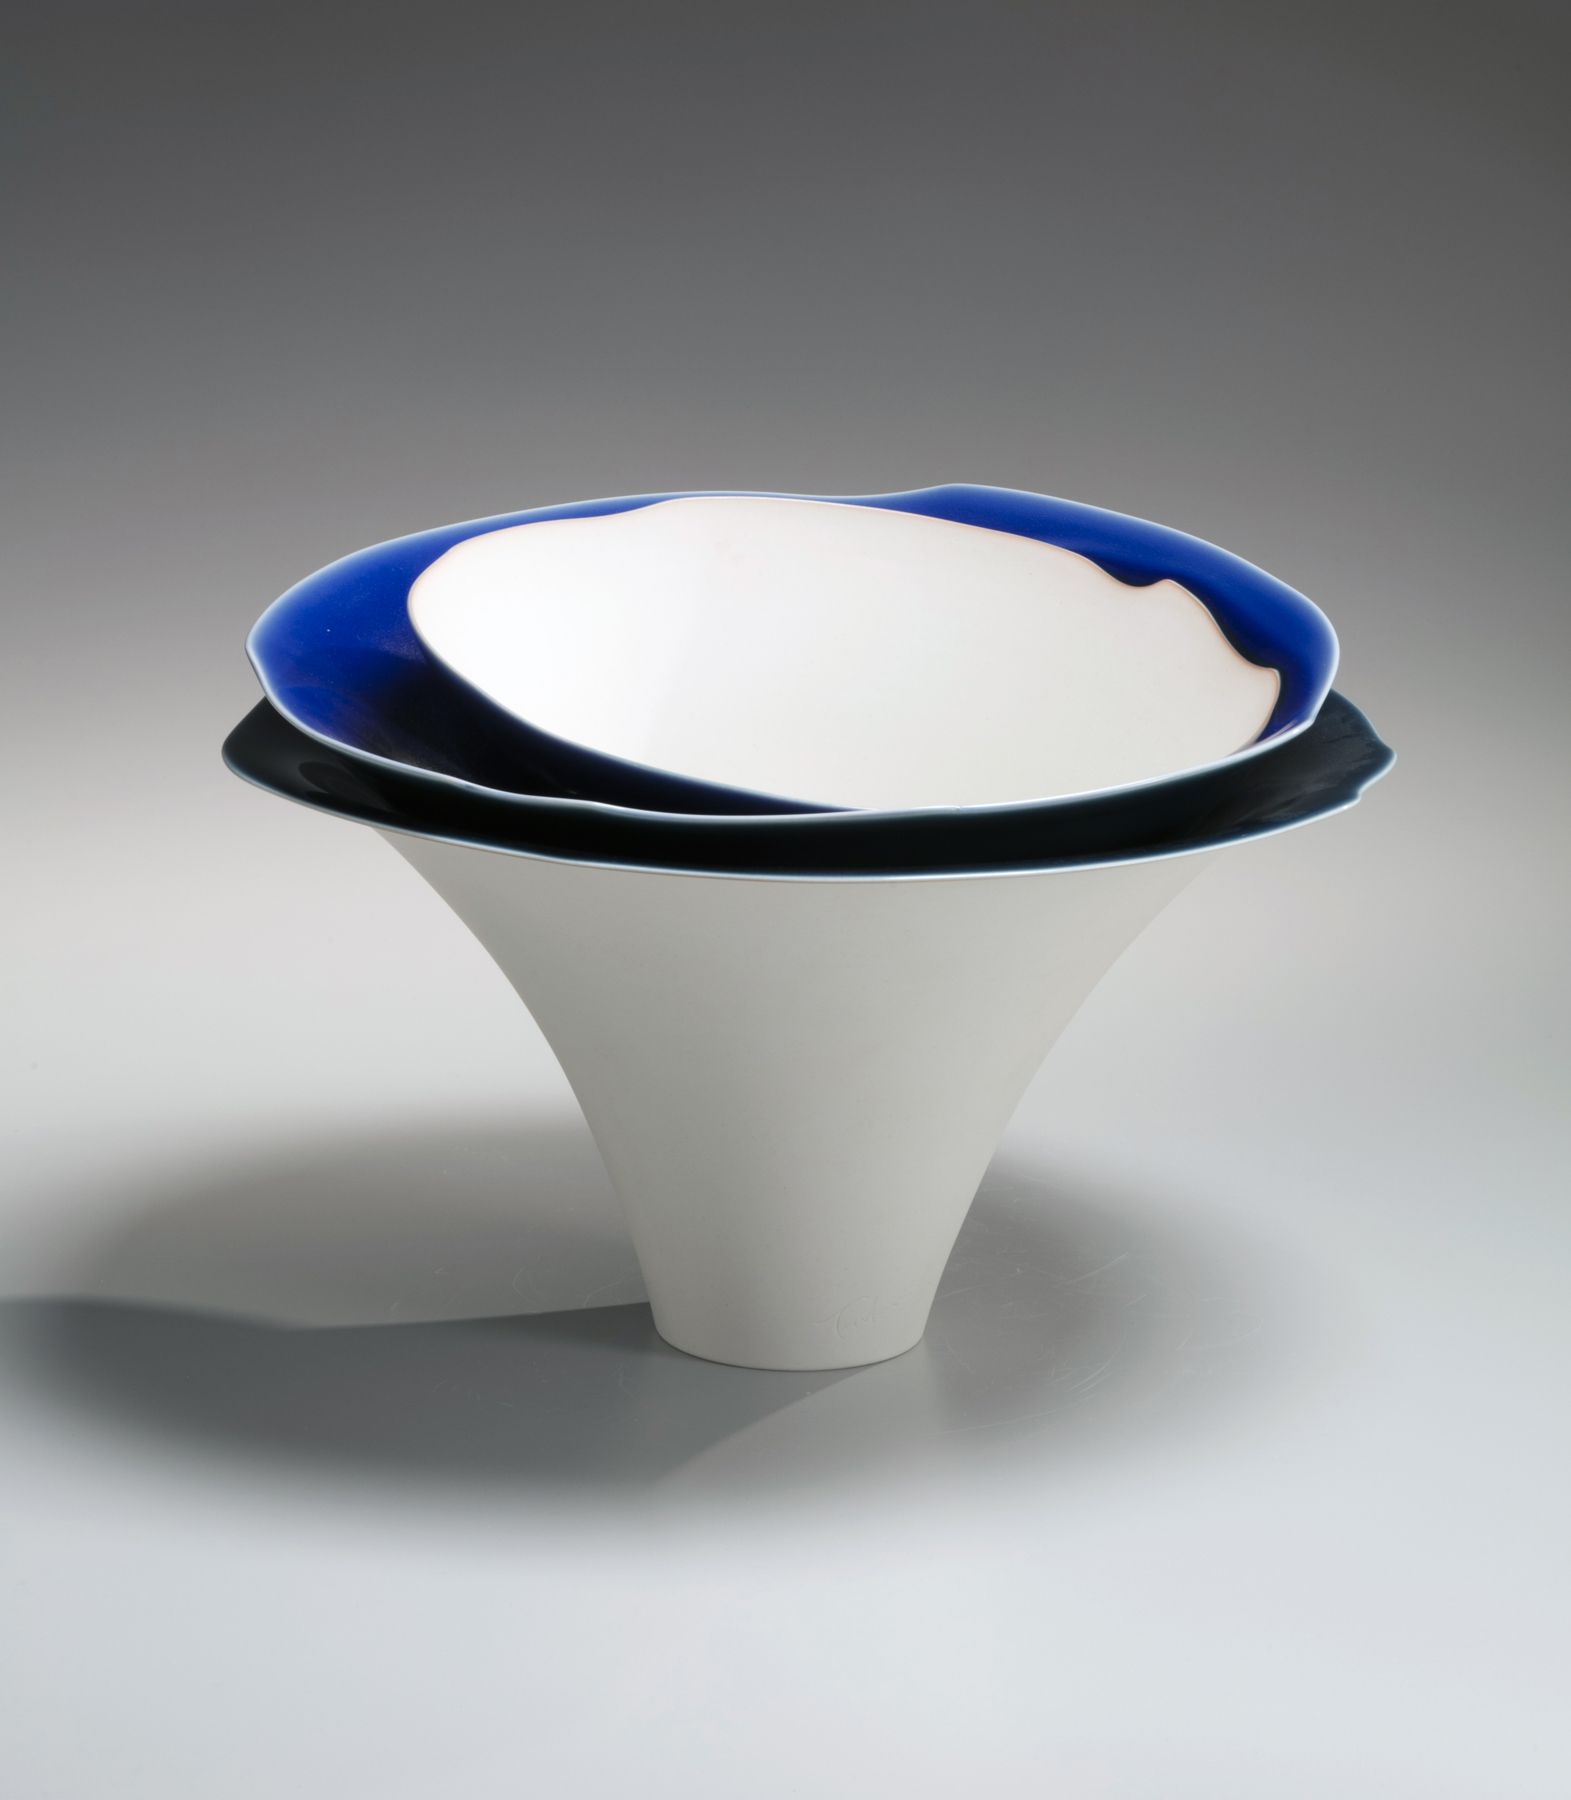 Fukumoto Fuku (b. 1973), Tiered sculpture of two shallow, and one large conical stacked bowls and decorated with blue glazes